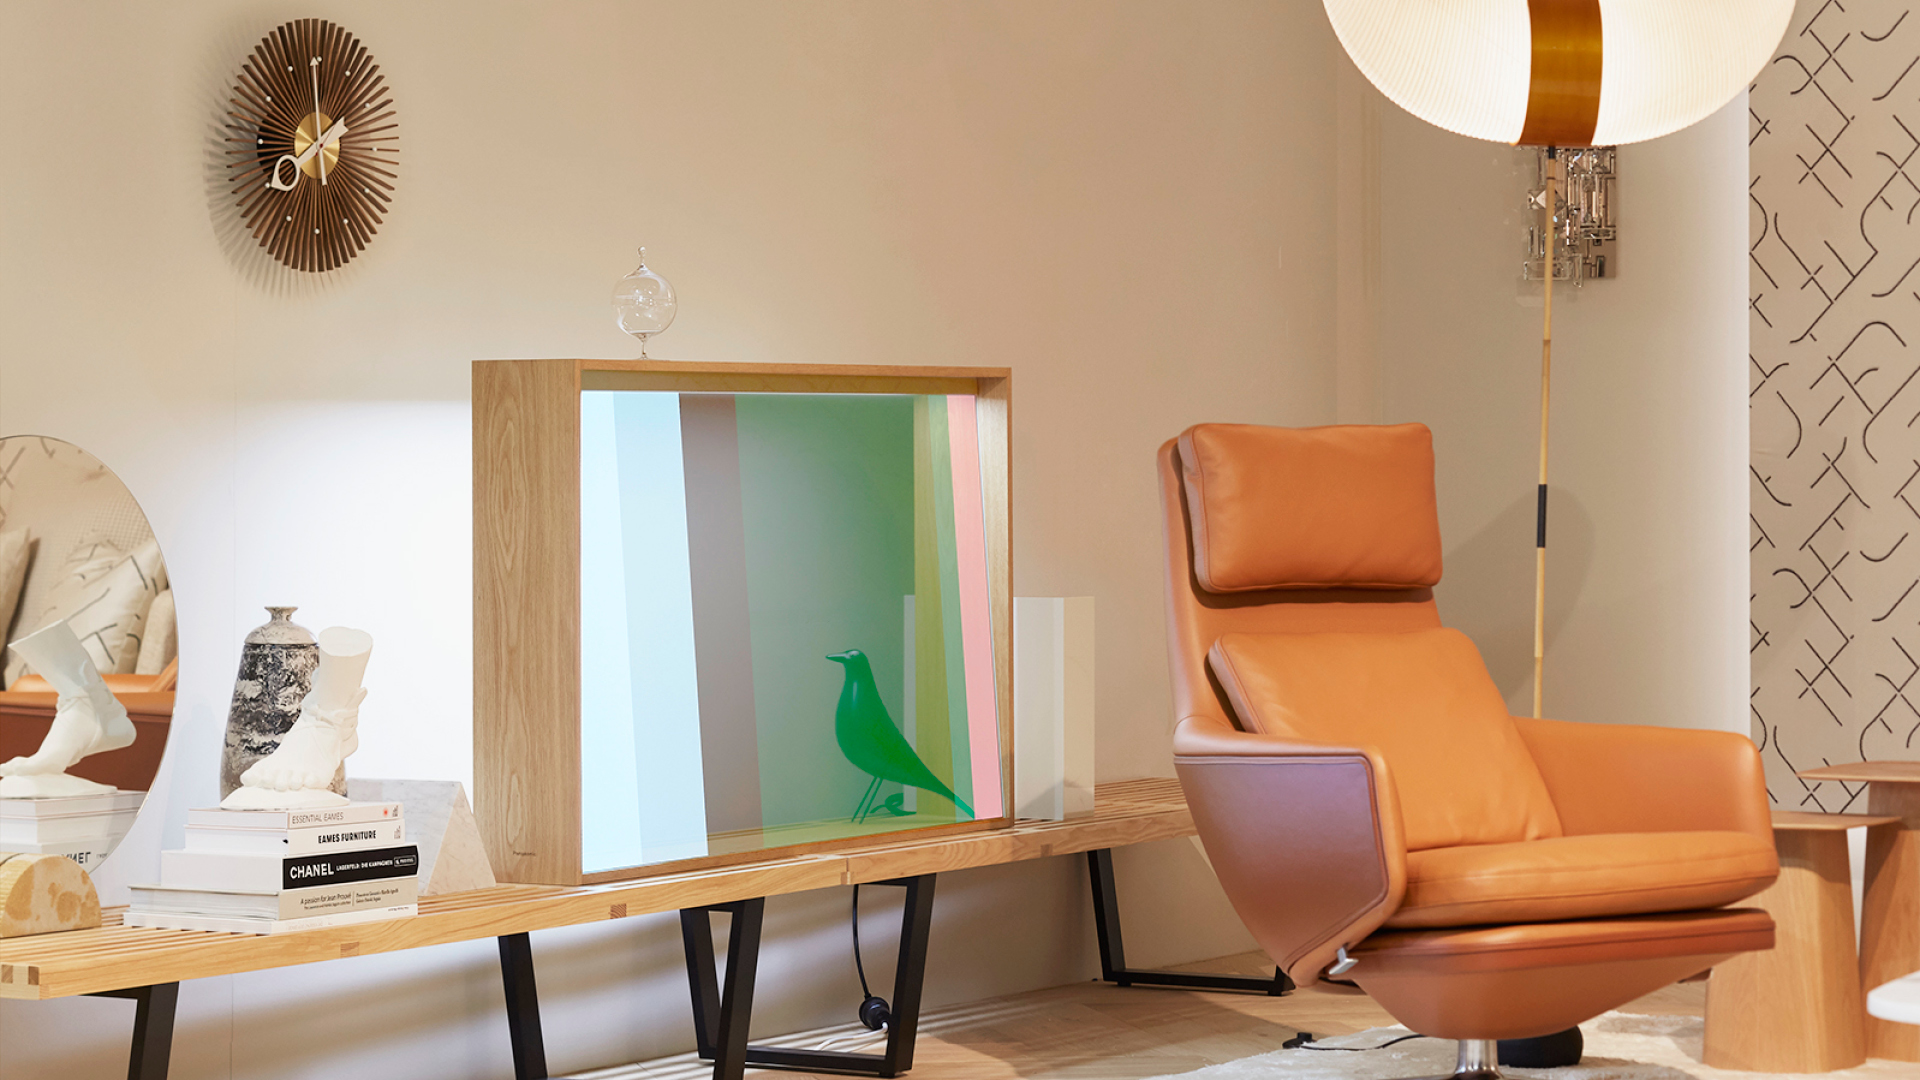 Panasonic and Vitra unveil transparent OLED screen at Milan Design Week